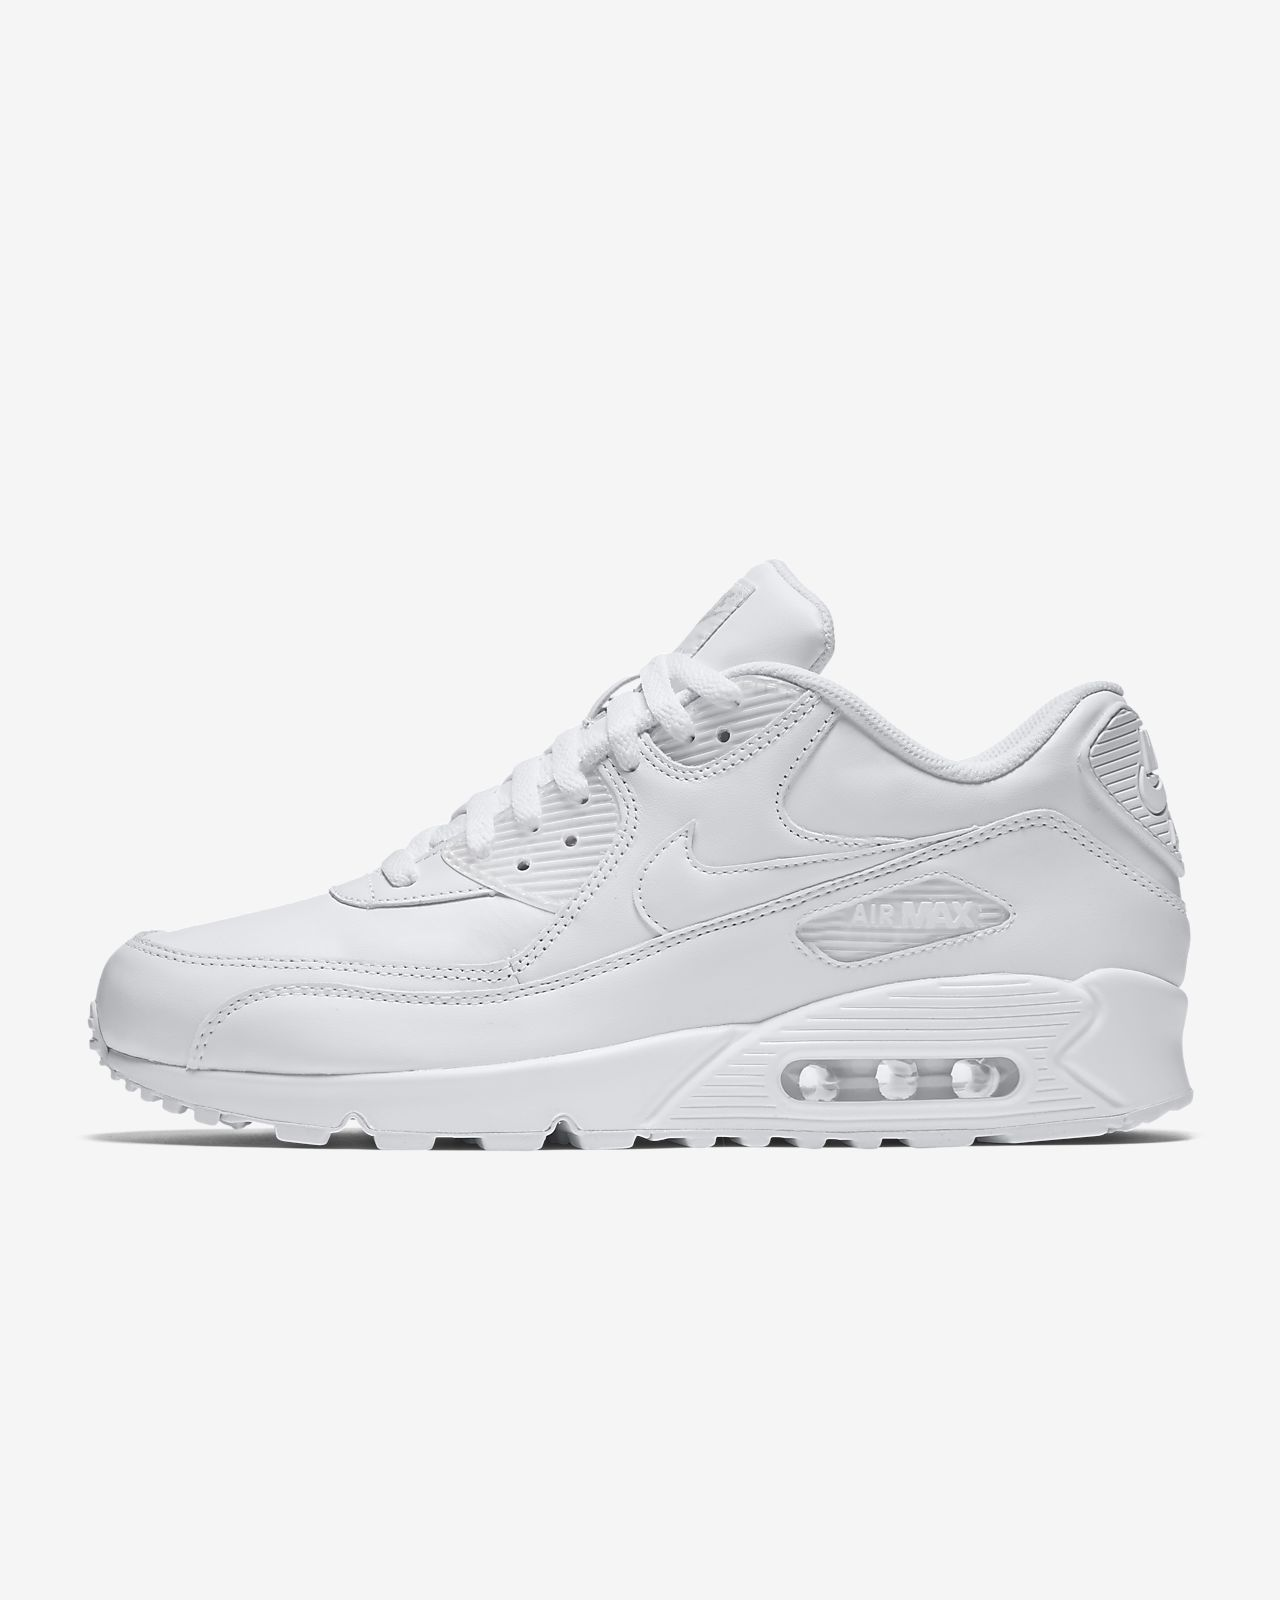 Sko Nike Air Max 90 Leather för män